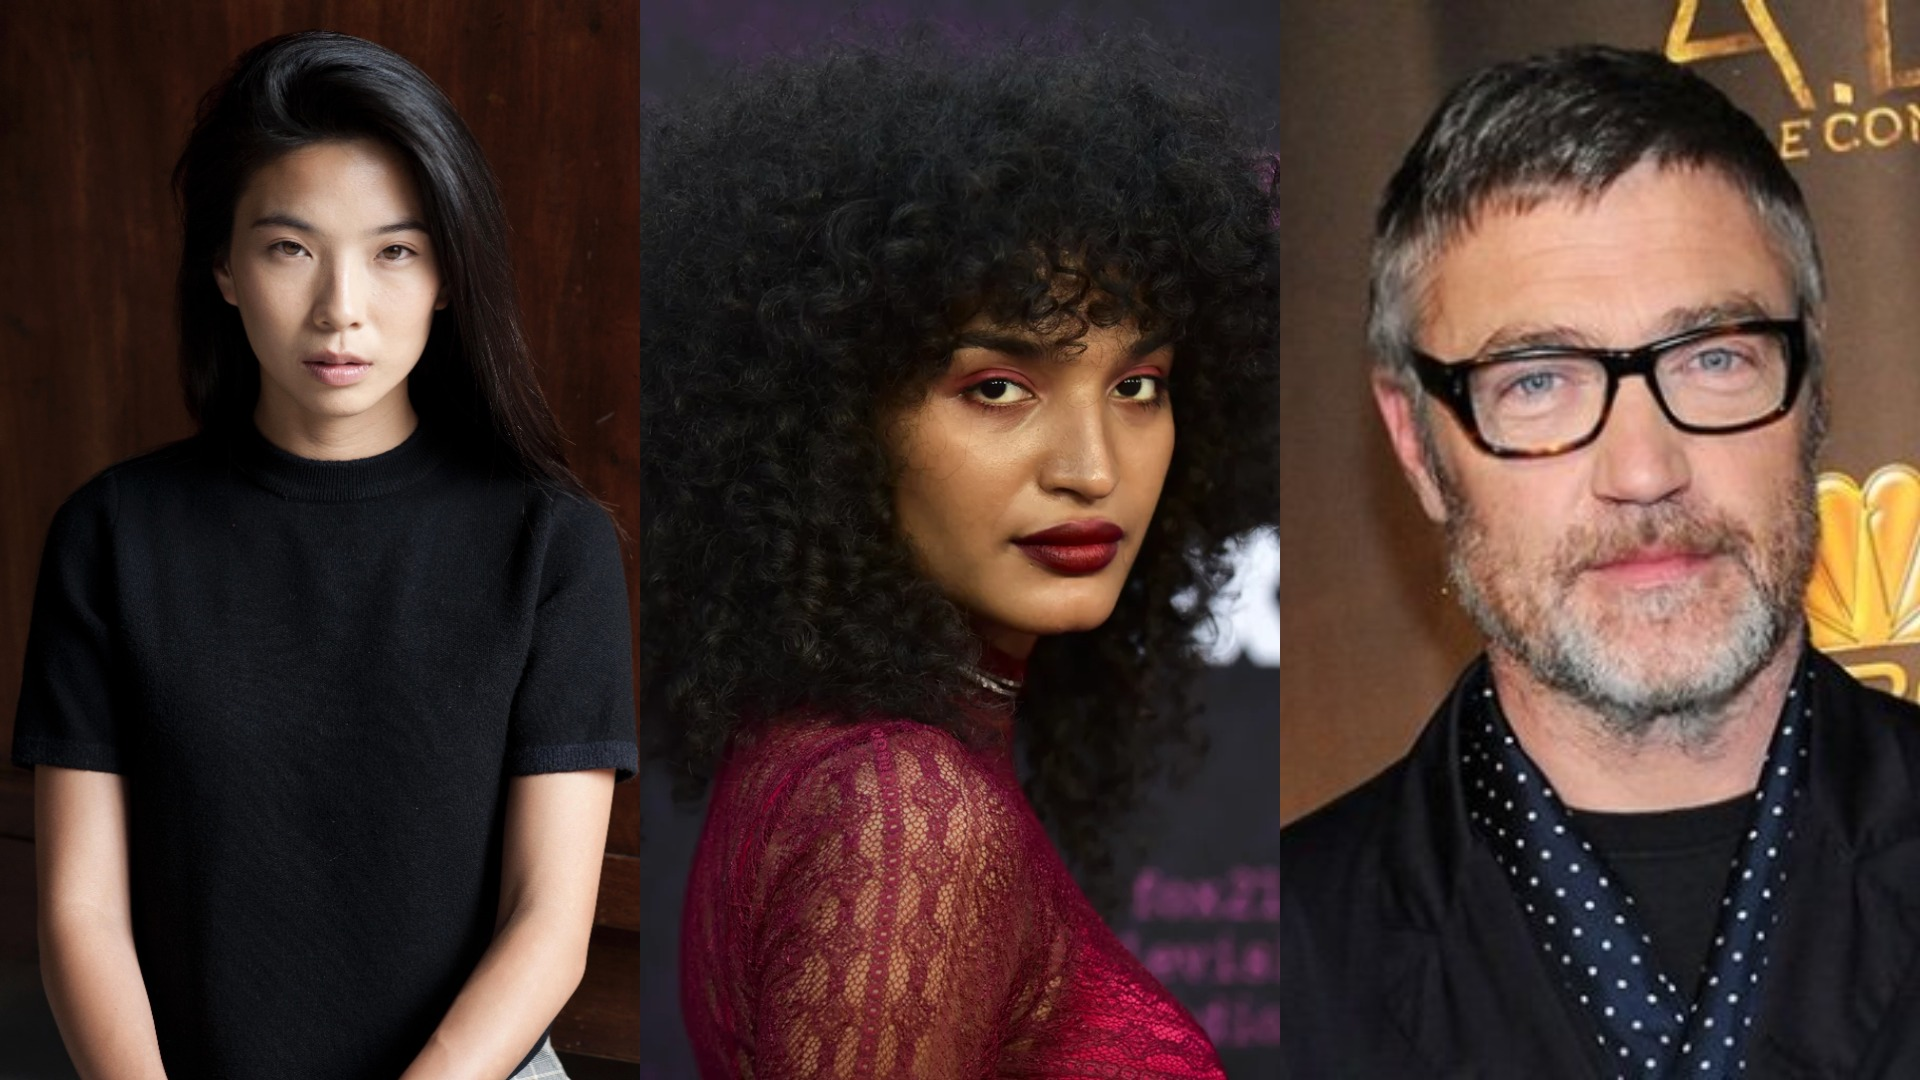 The Hollywood Reporter is exclusively reporting that Jani Zhao, Indya Moore and Vincent Regan are the latest names to join the cast for the upcoming Aquaman sequel Aquaman And The Lost Kingdom.